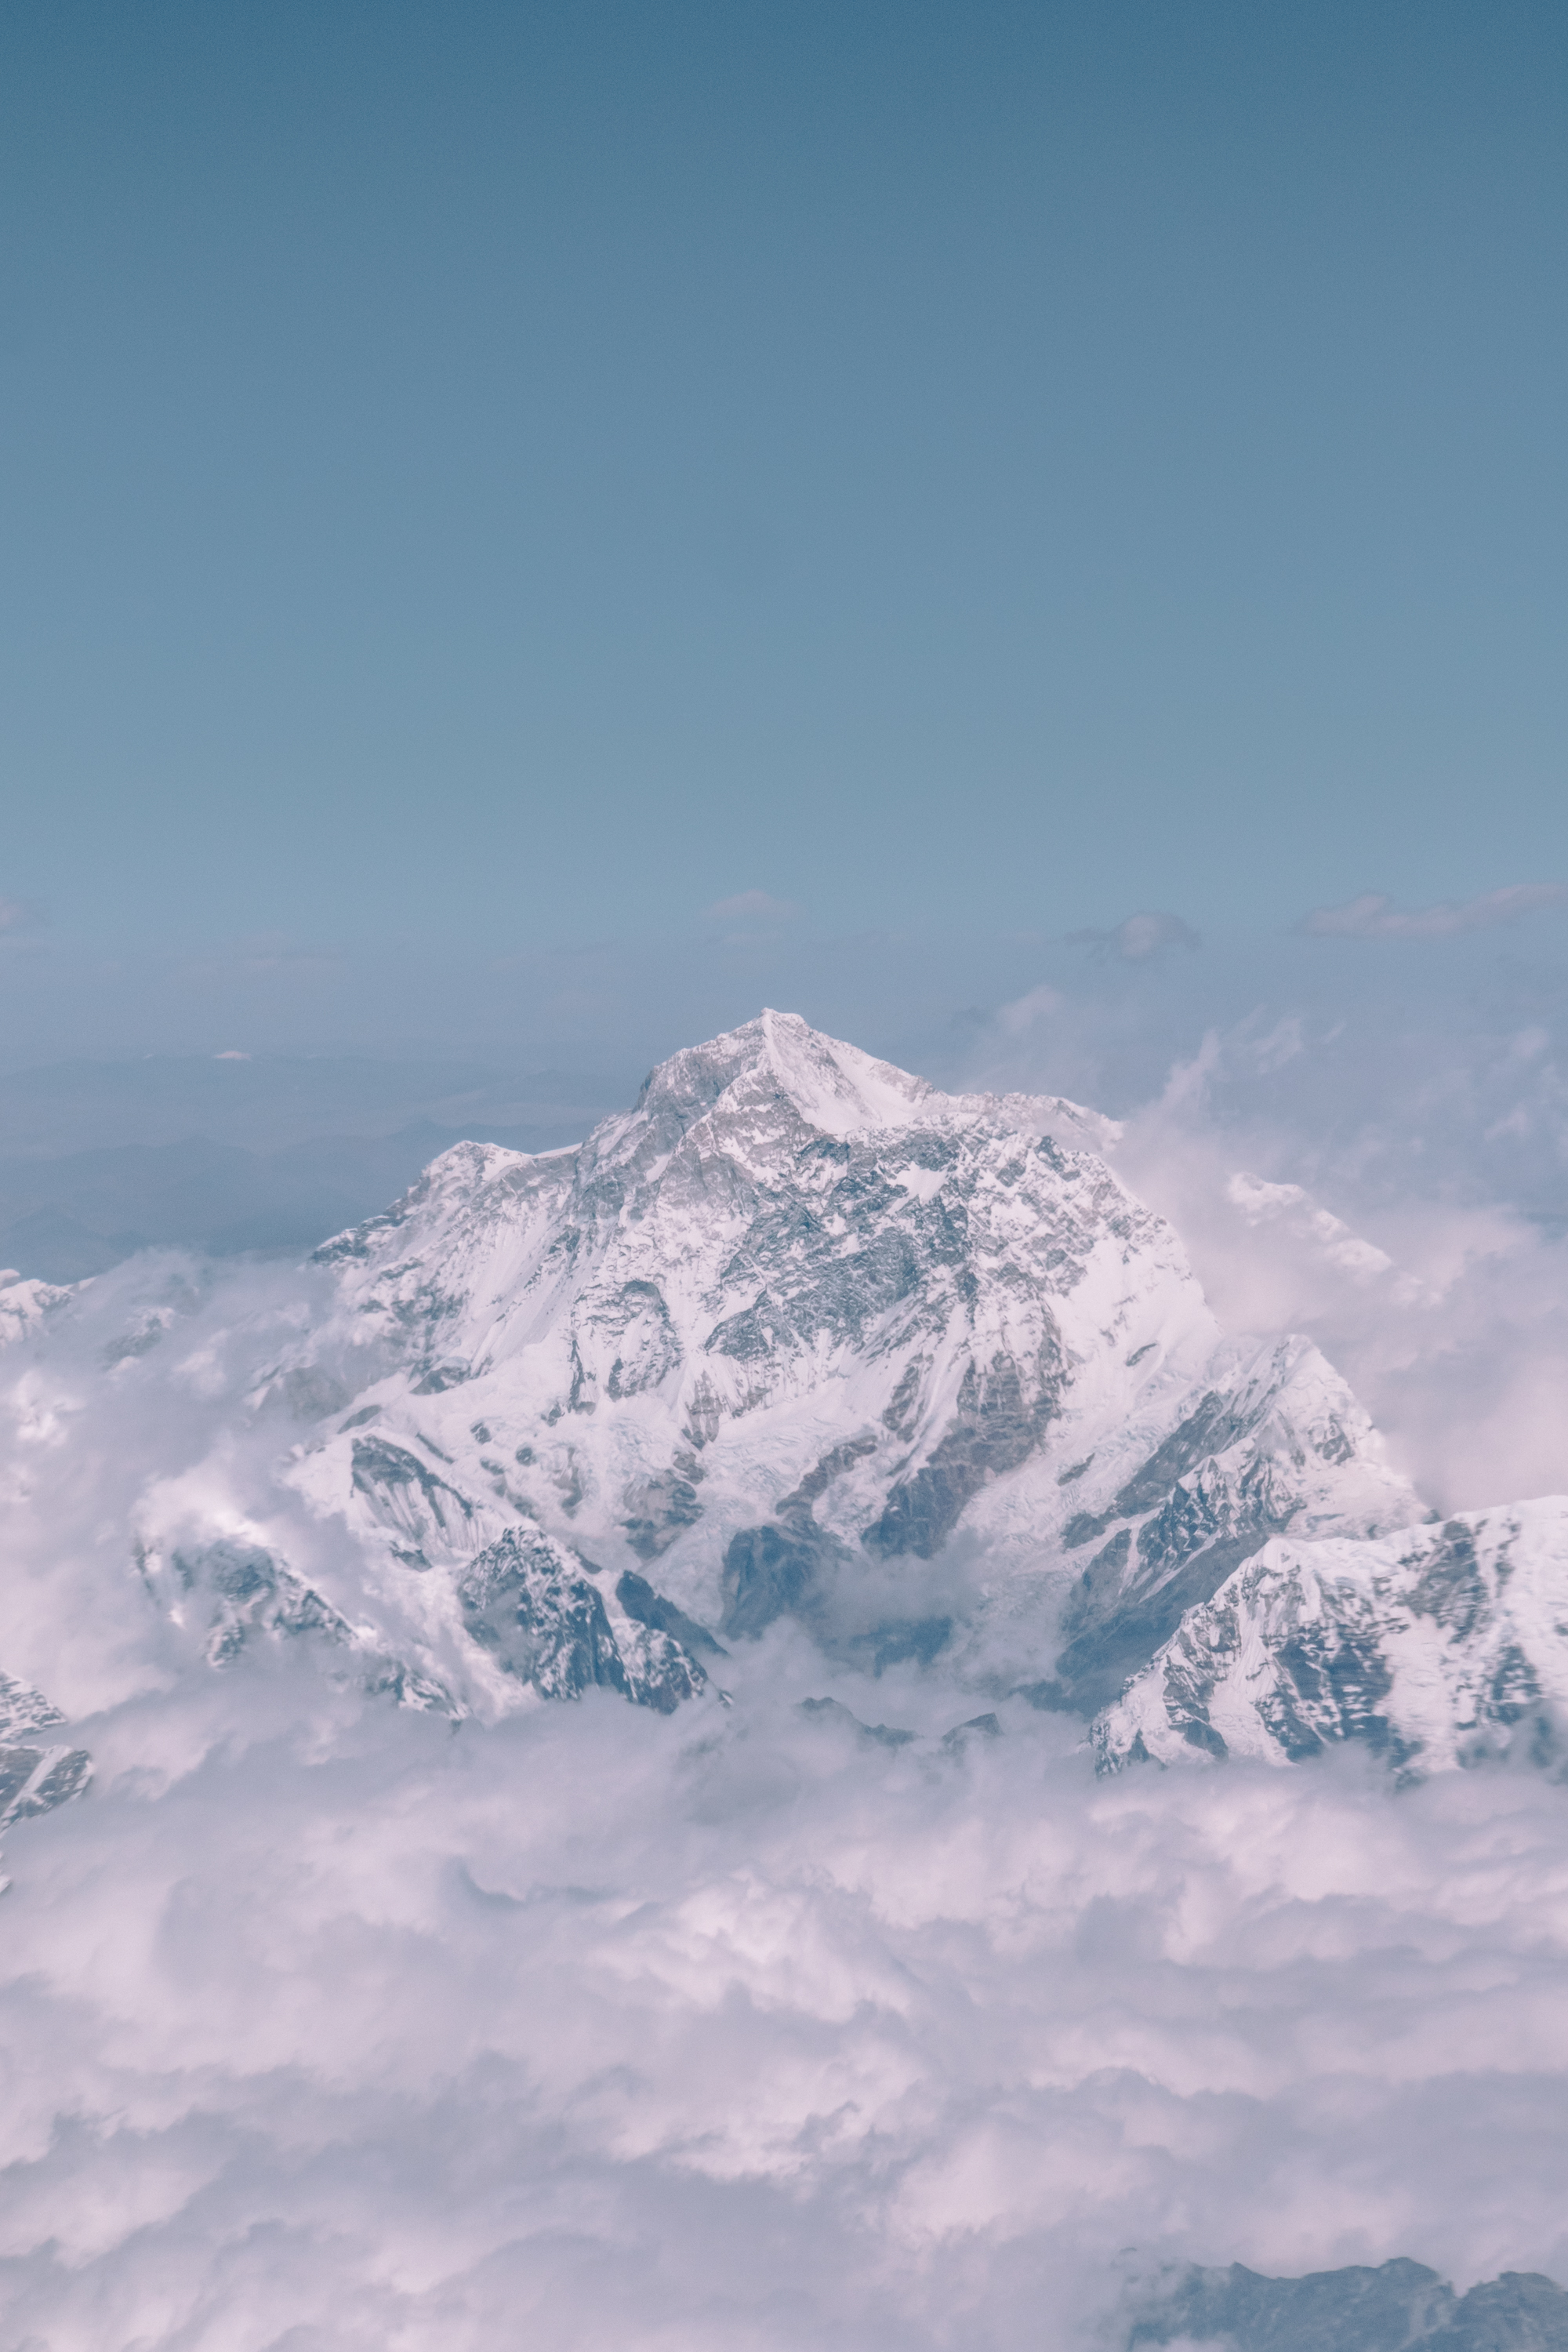 Everest, Himalayas - Mt. Everest, above the cloud line. The Himalayan mountain range between Nepal and Tibet.